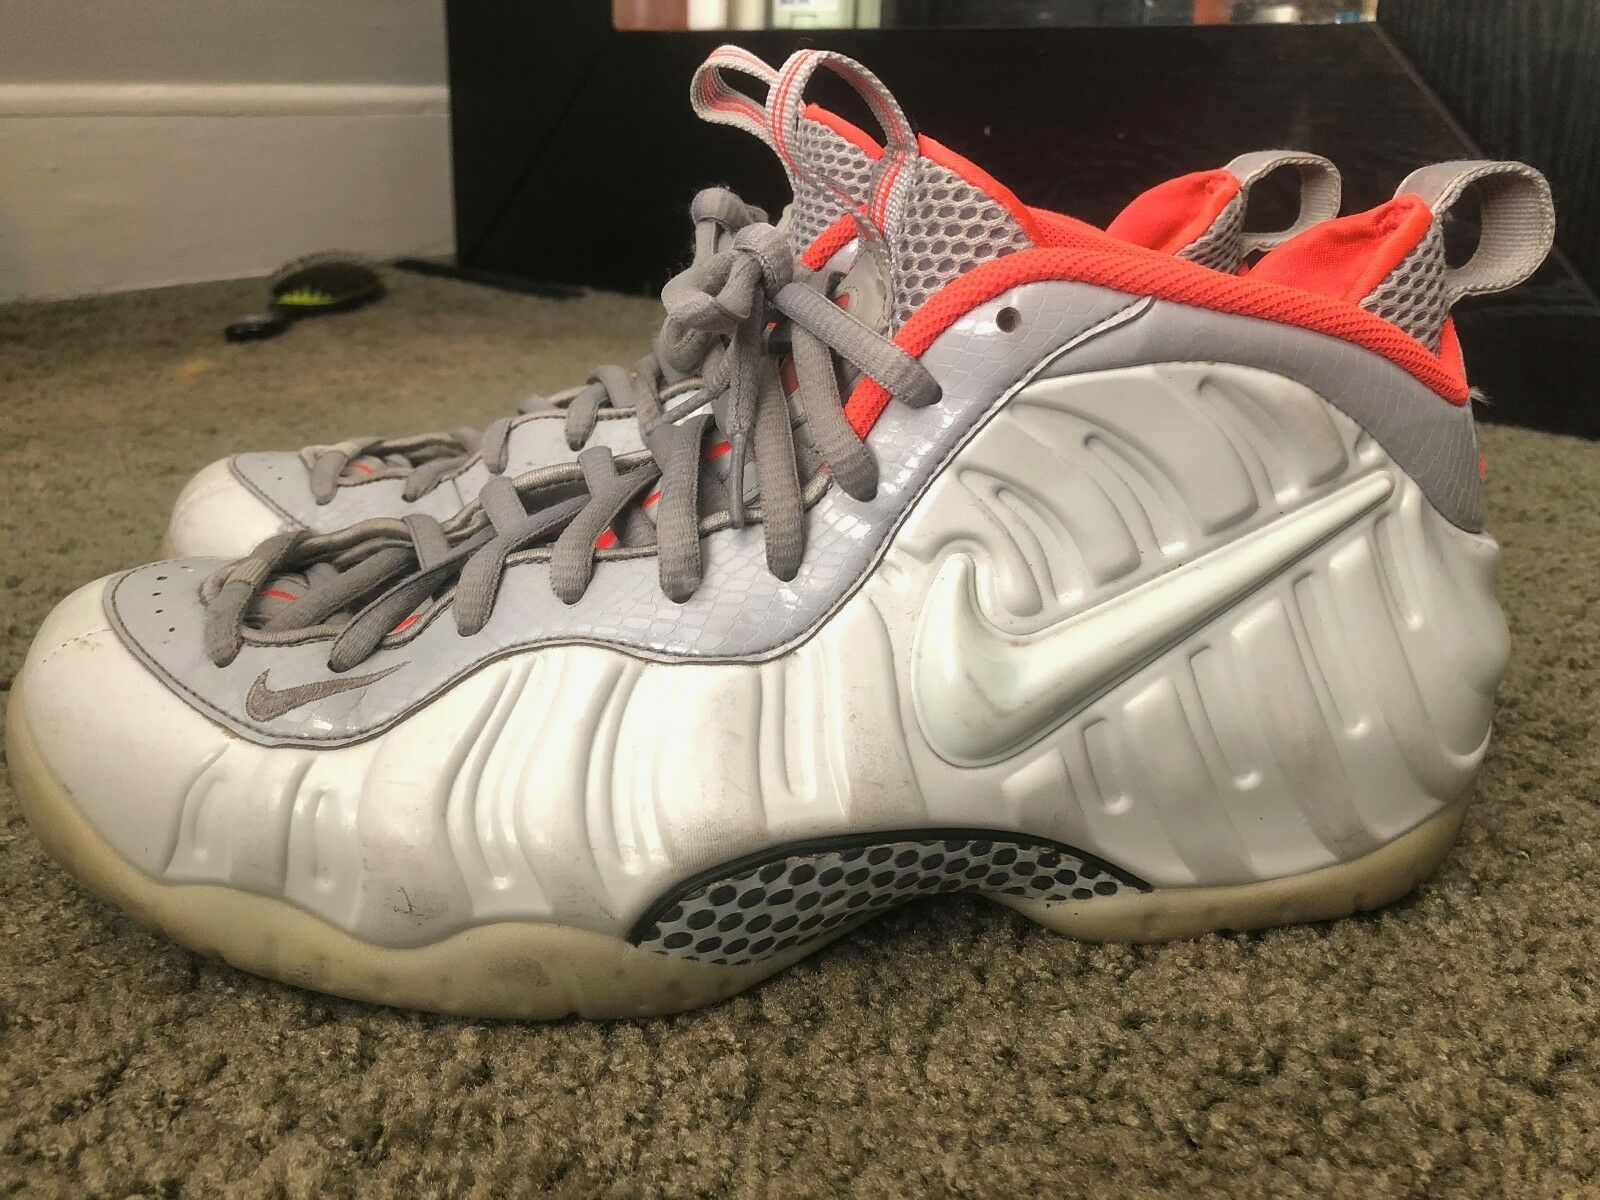 Nike Foamposite Platinum Size 11.5  Cheap and fashionable